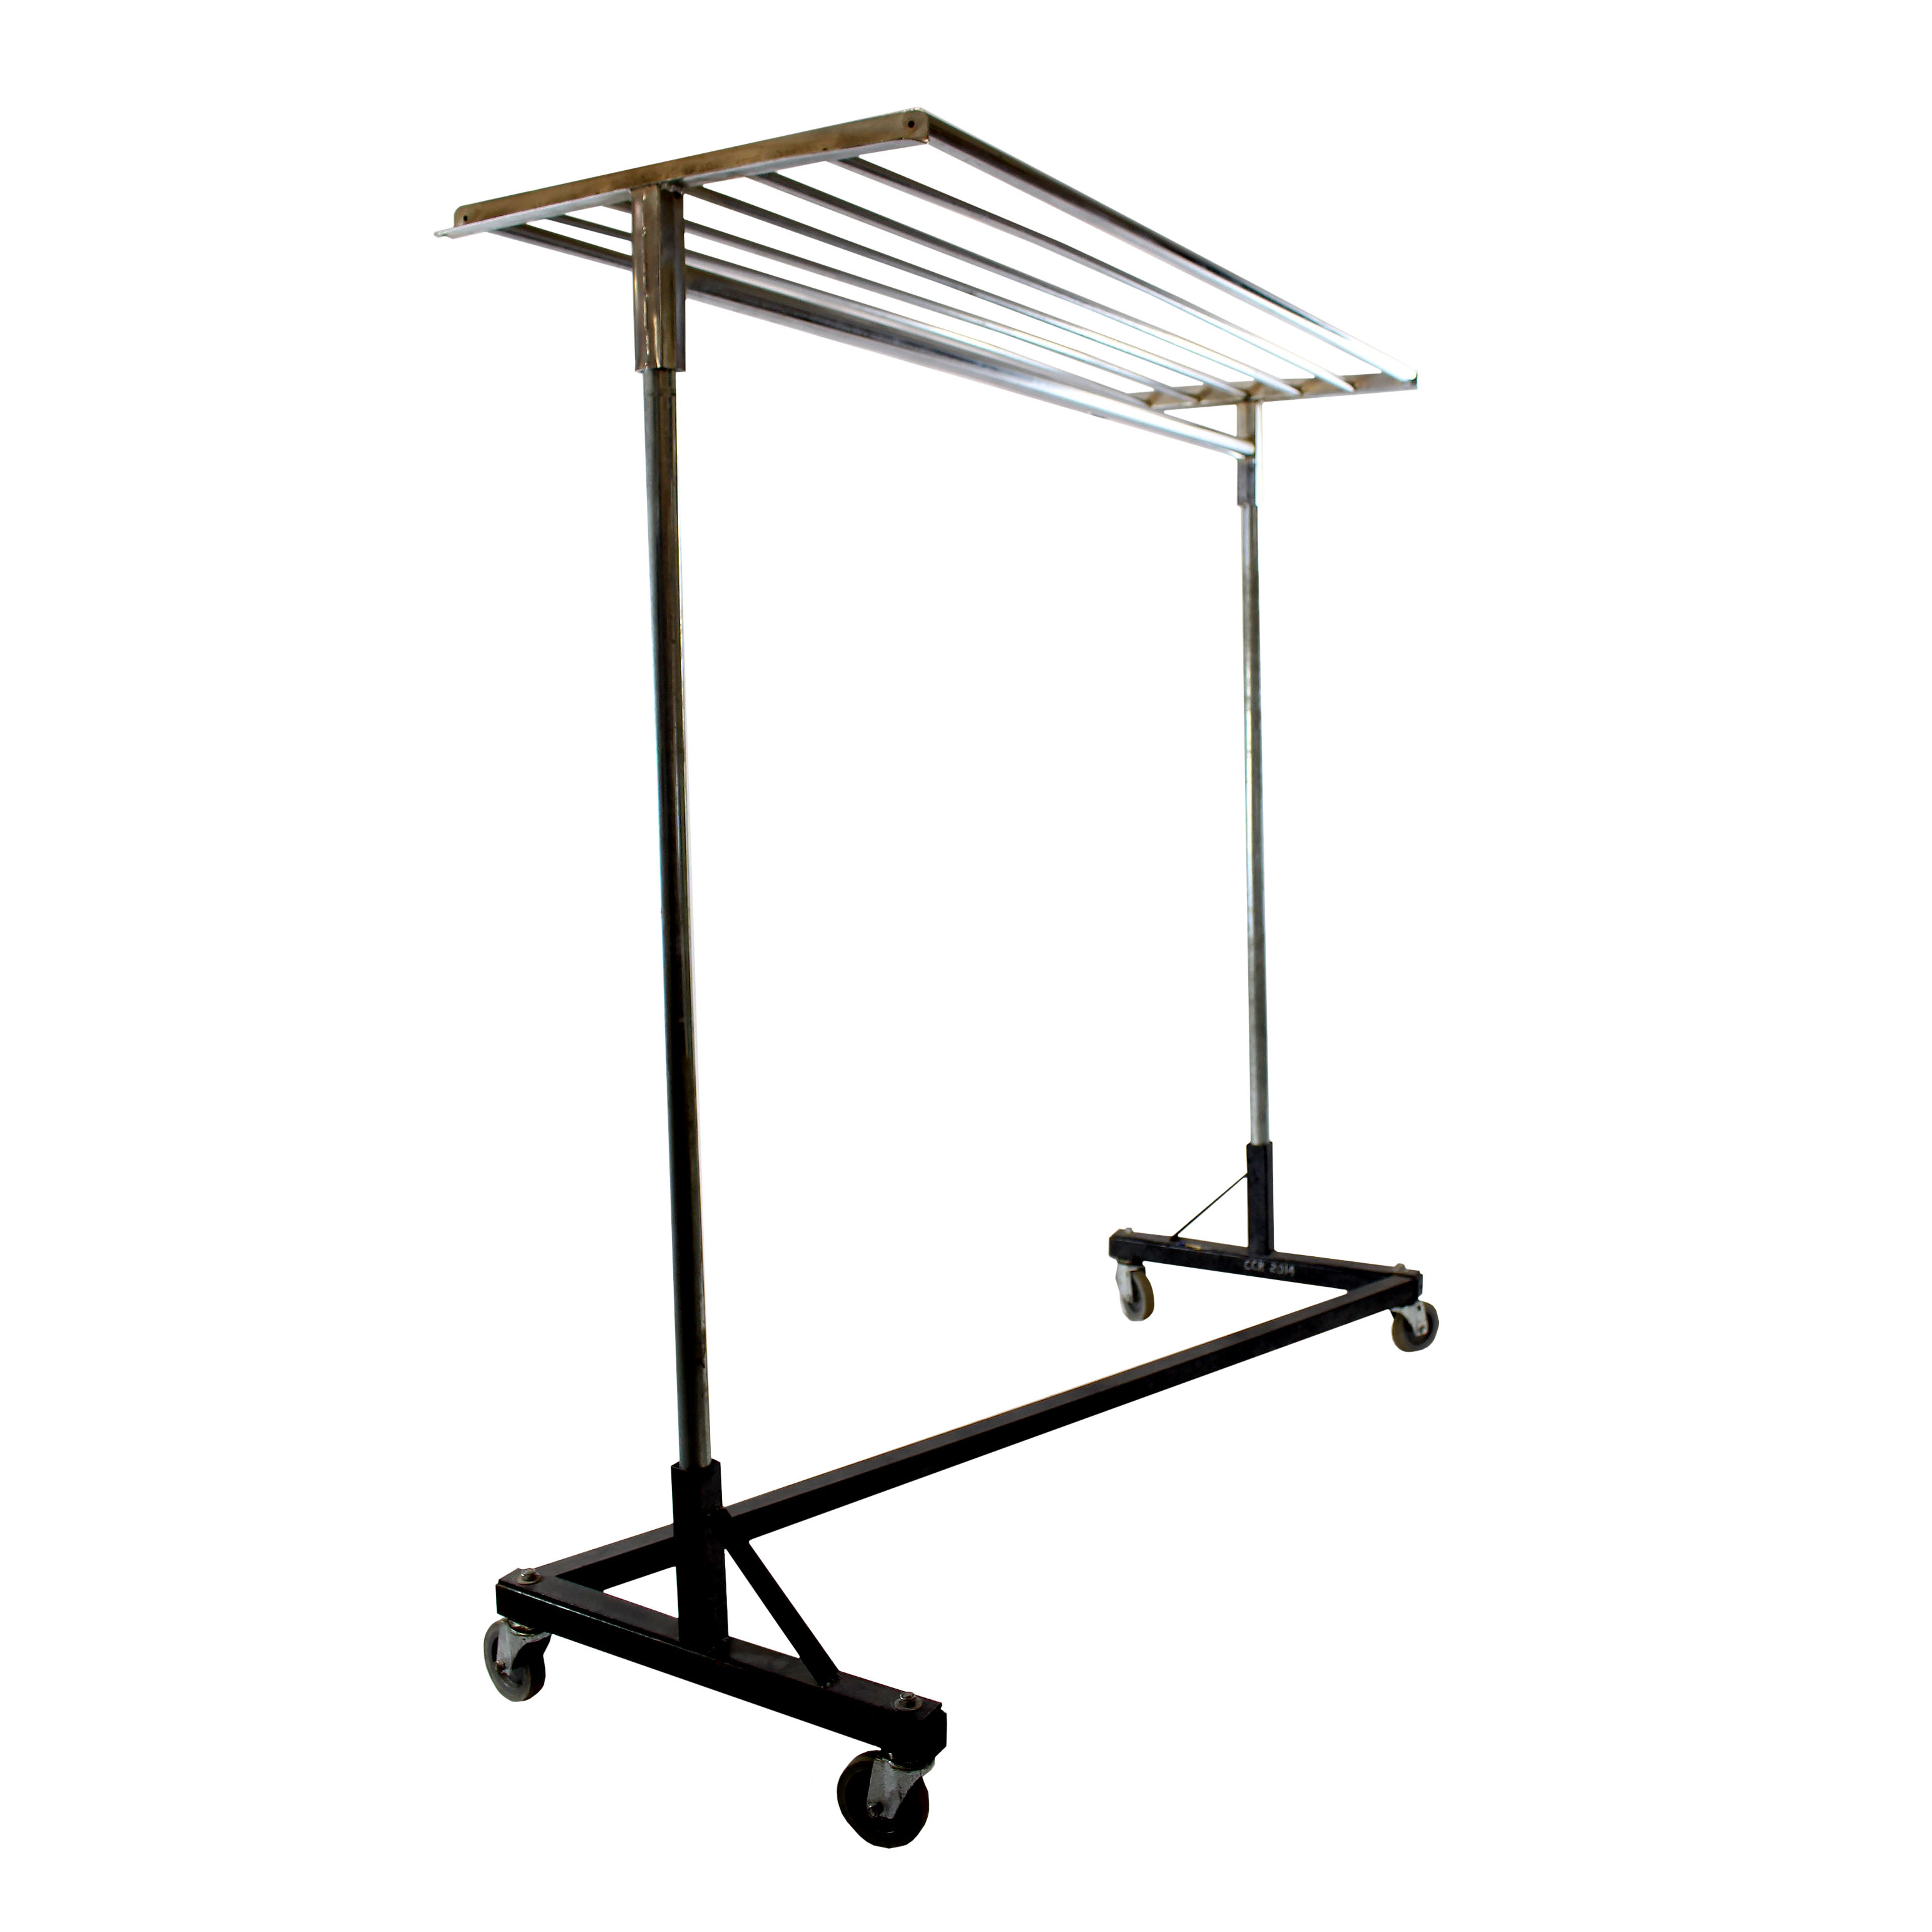 Z Coat Rack on Wheels with Shelf